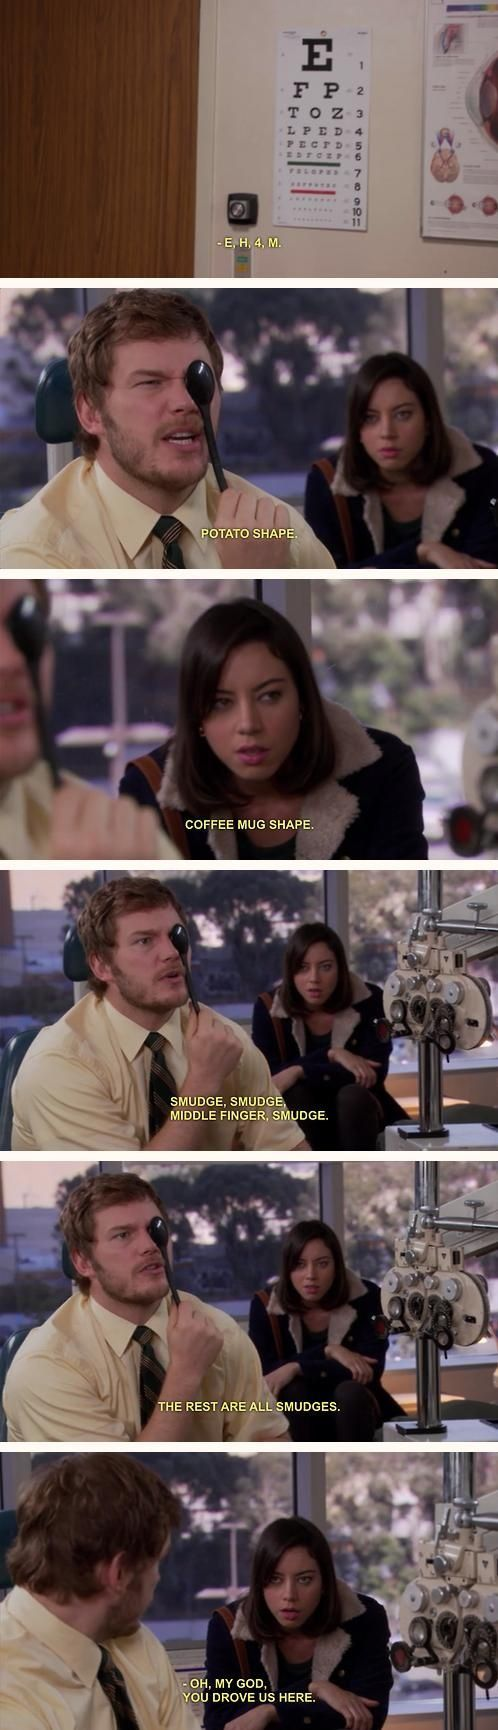 One of my favorite Andy moments from Parks and Recreation